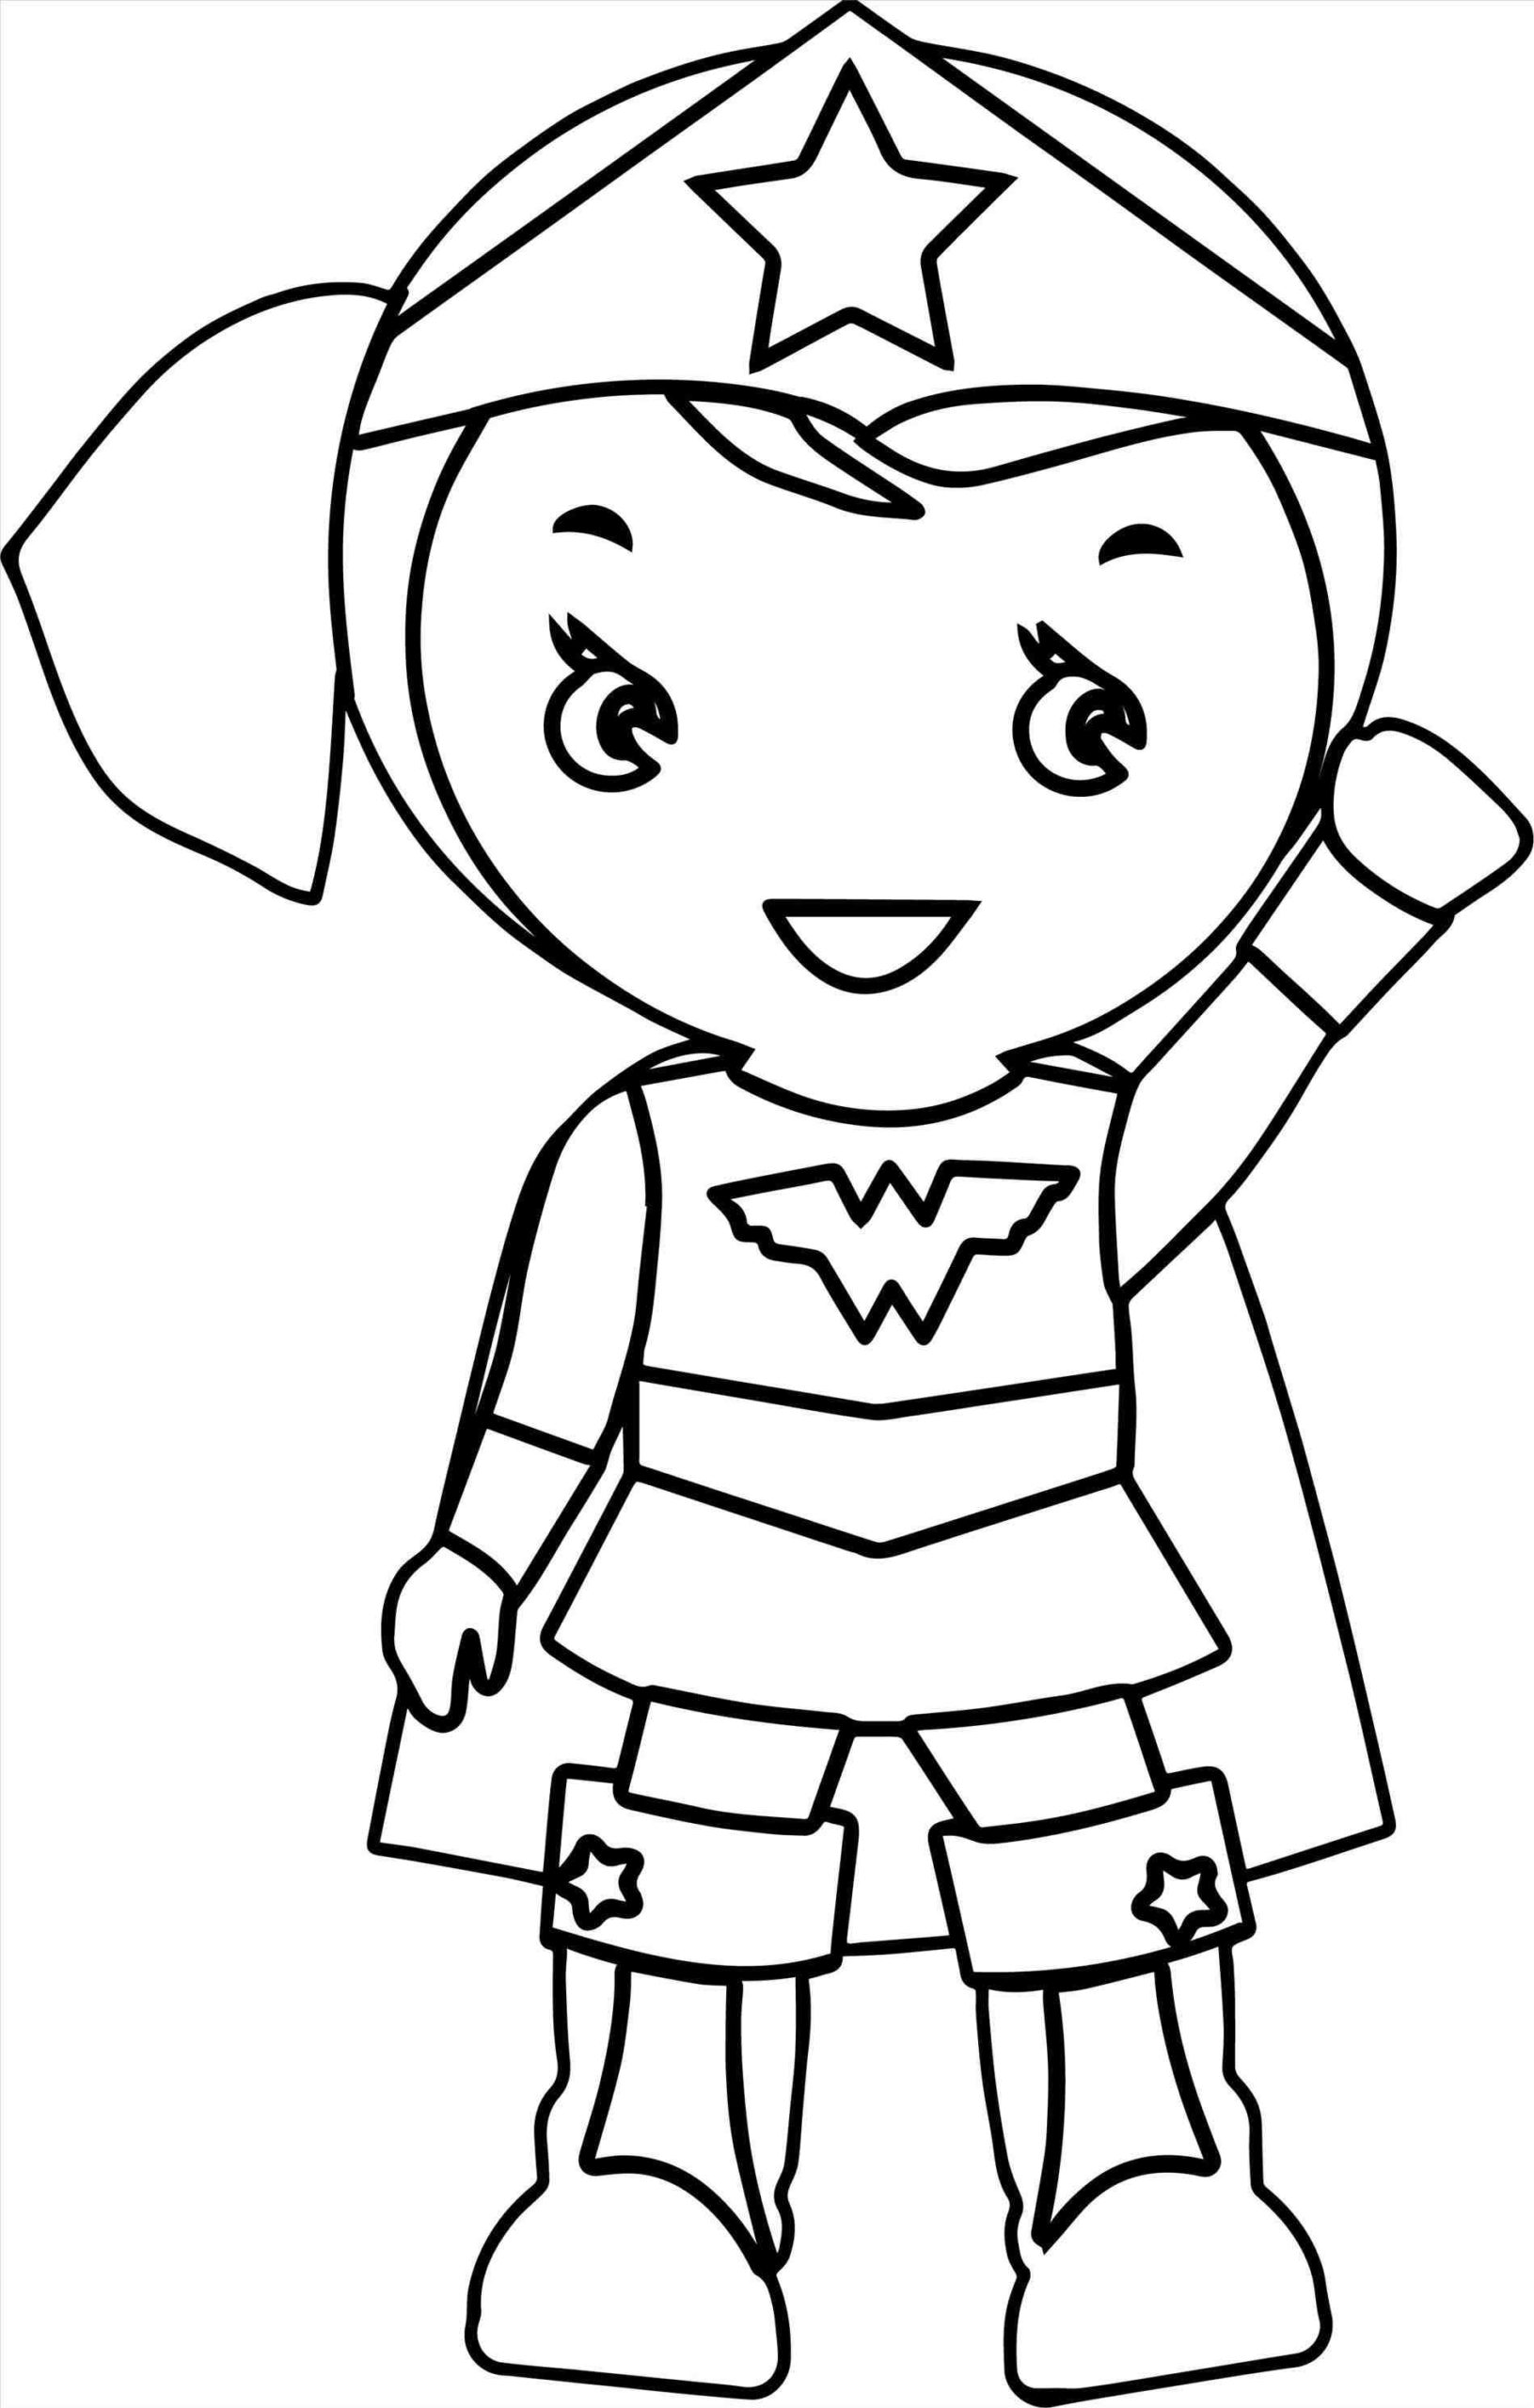 Wonder Women Coloring Pages - Coloring Home